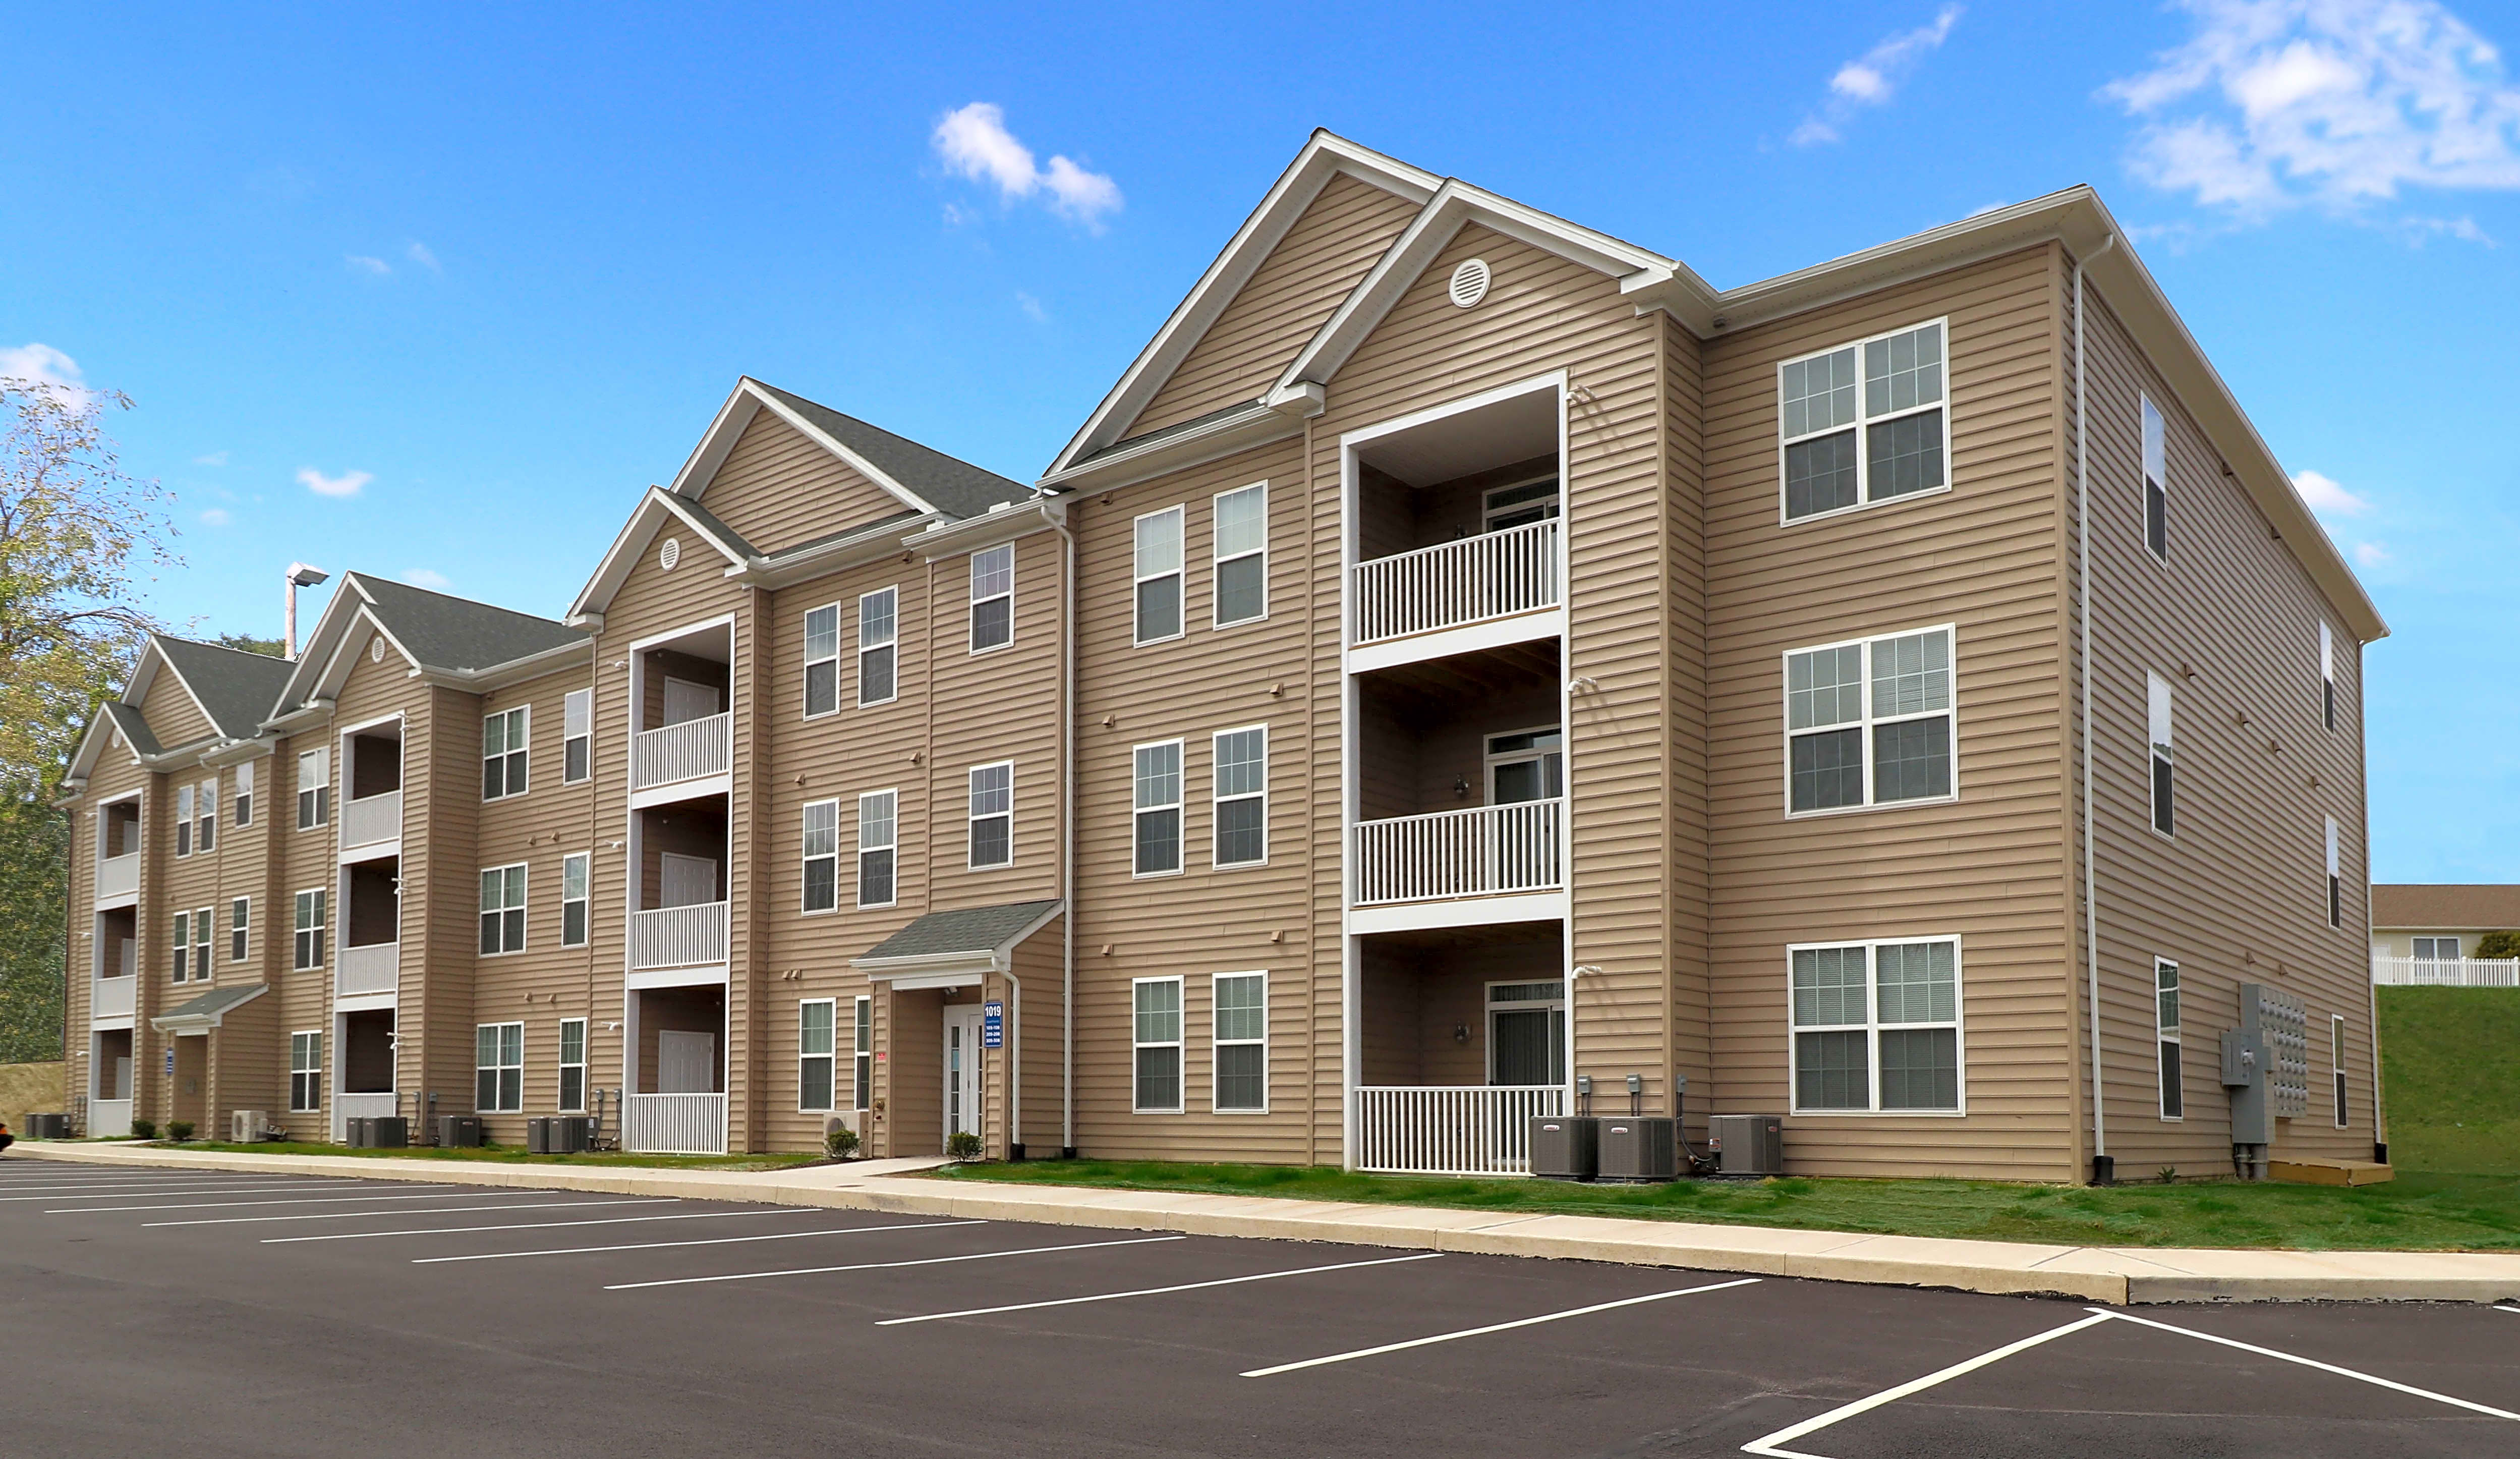 Apartments Near King's Lexington Village for King's College Students in Wilkes Barre, PA